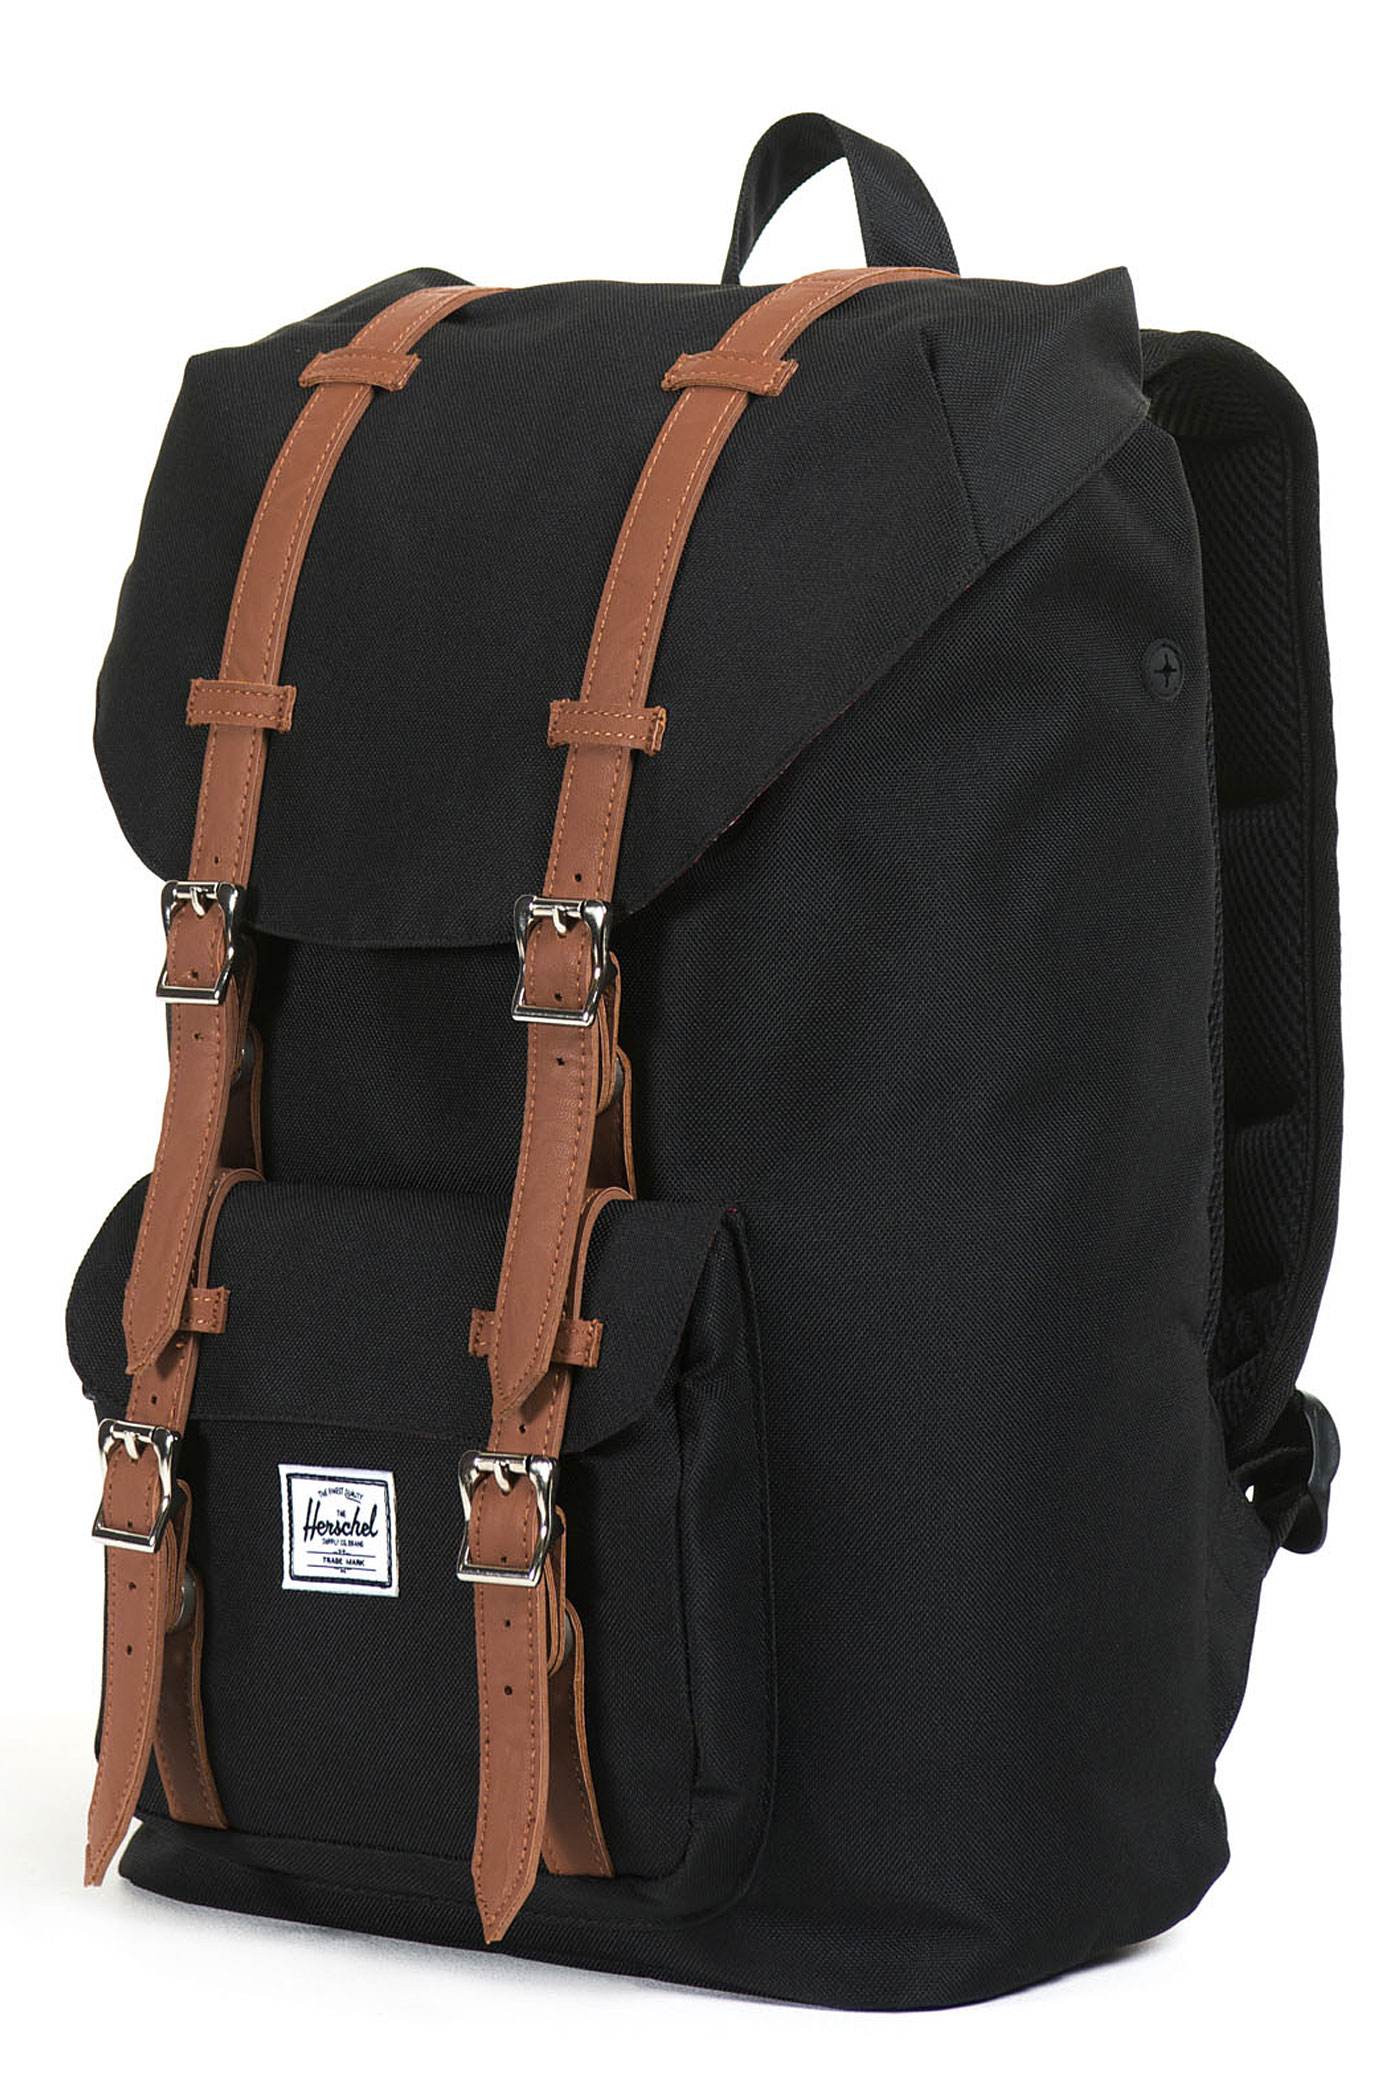 herschel little america mid backpack 17l black tan buy. Black Bedroom Furniture Sets. Home Design Ideas